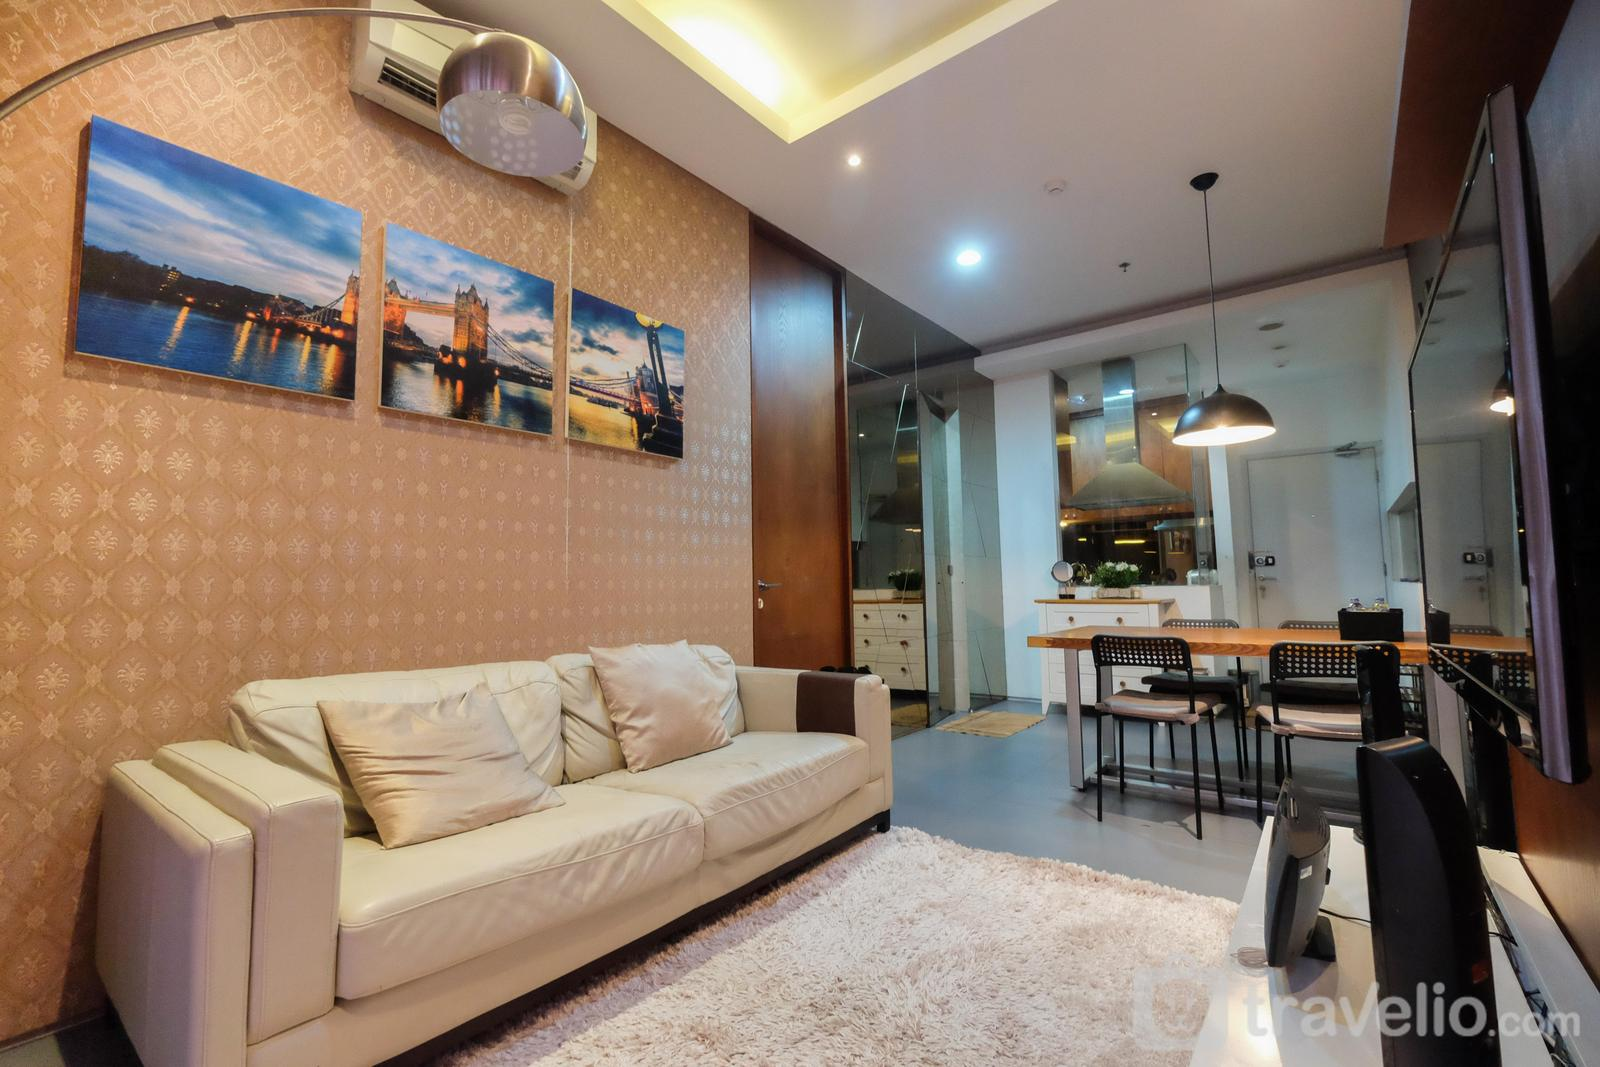 The Lavande Residence - Modern 1BR Apartment at The Lavande Residence By Travelio